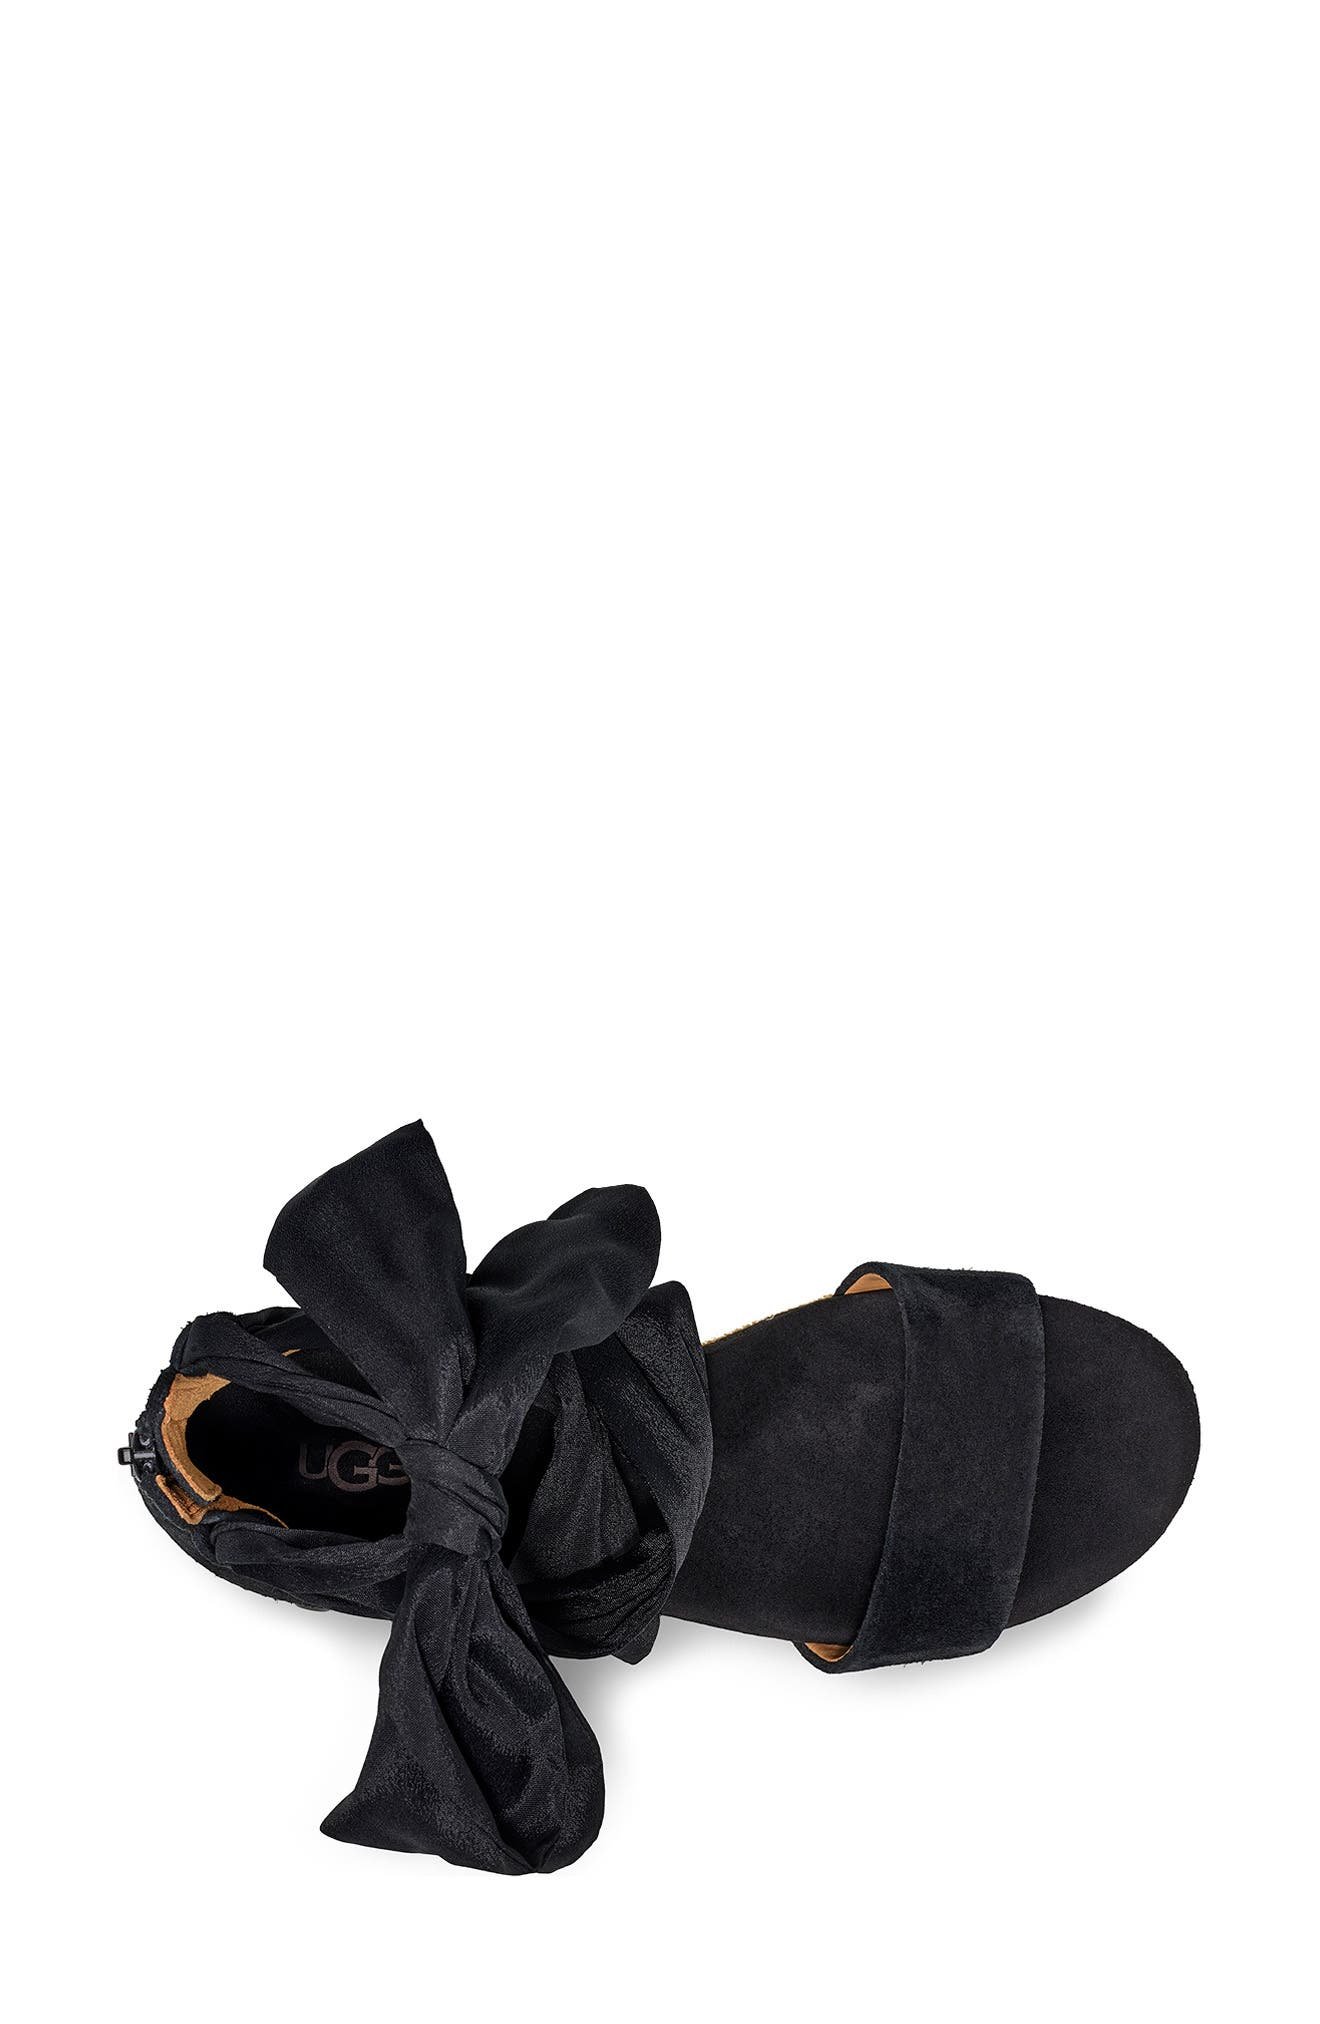 UGG<SUP>®</SUP>, Trina Ankle Tie Wedge Sandal, Alternate thumbnail 4, color, BLACK LEATHER